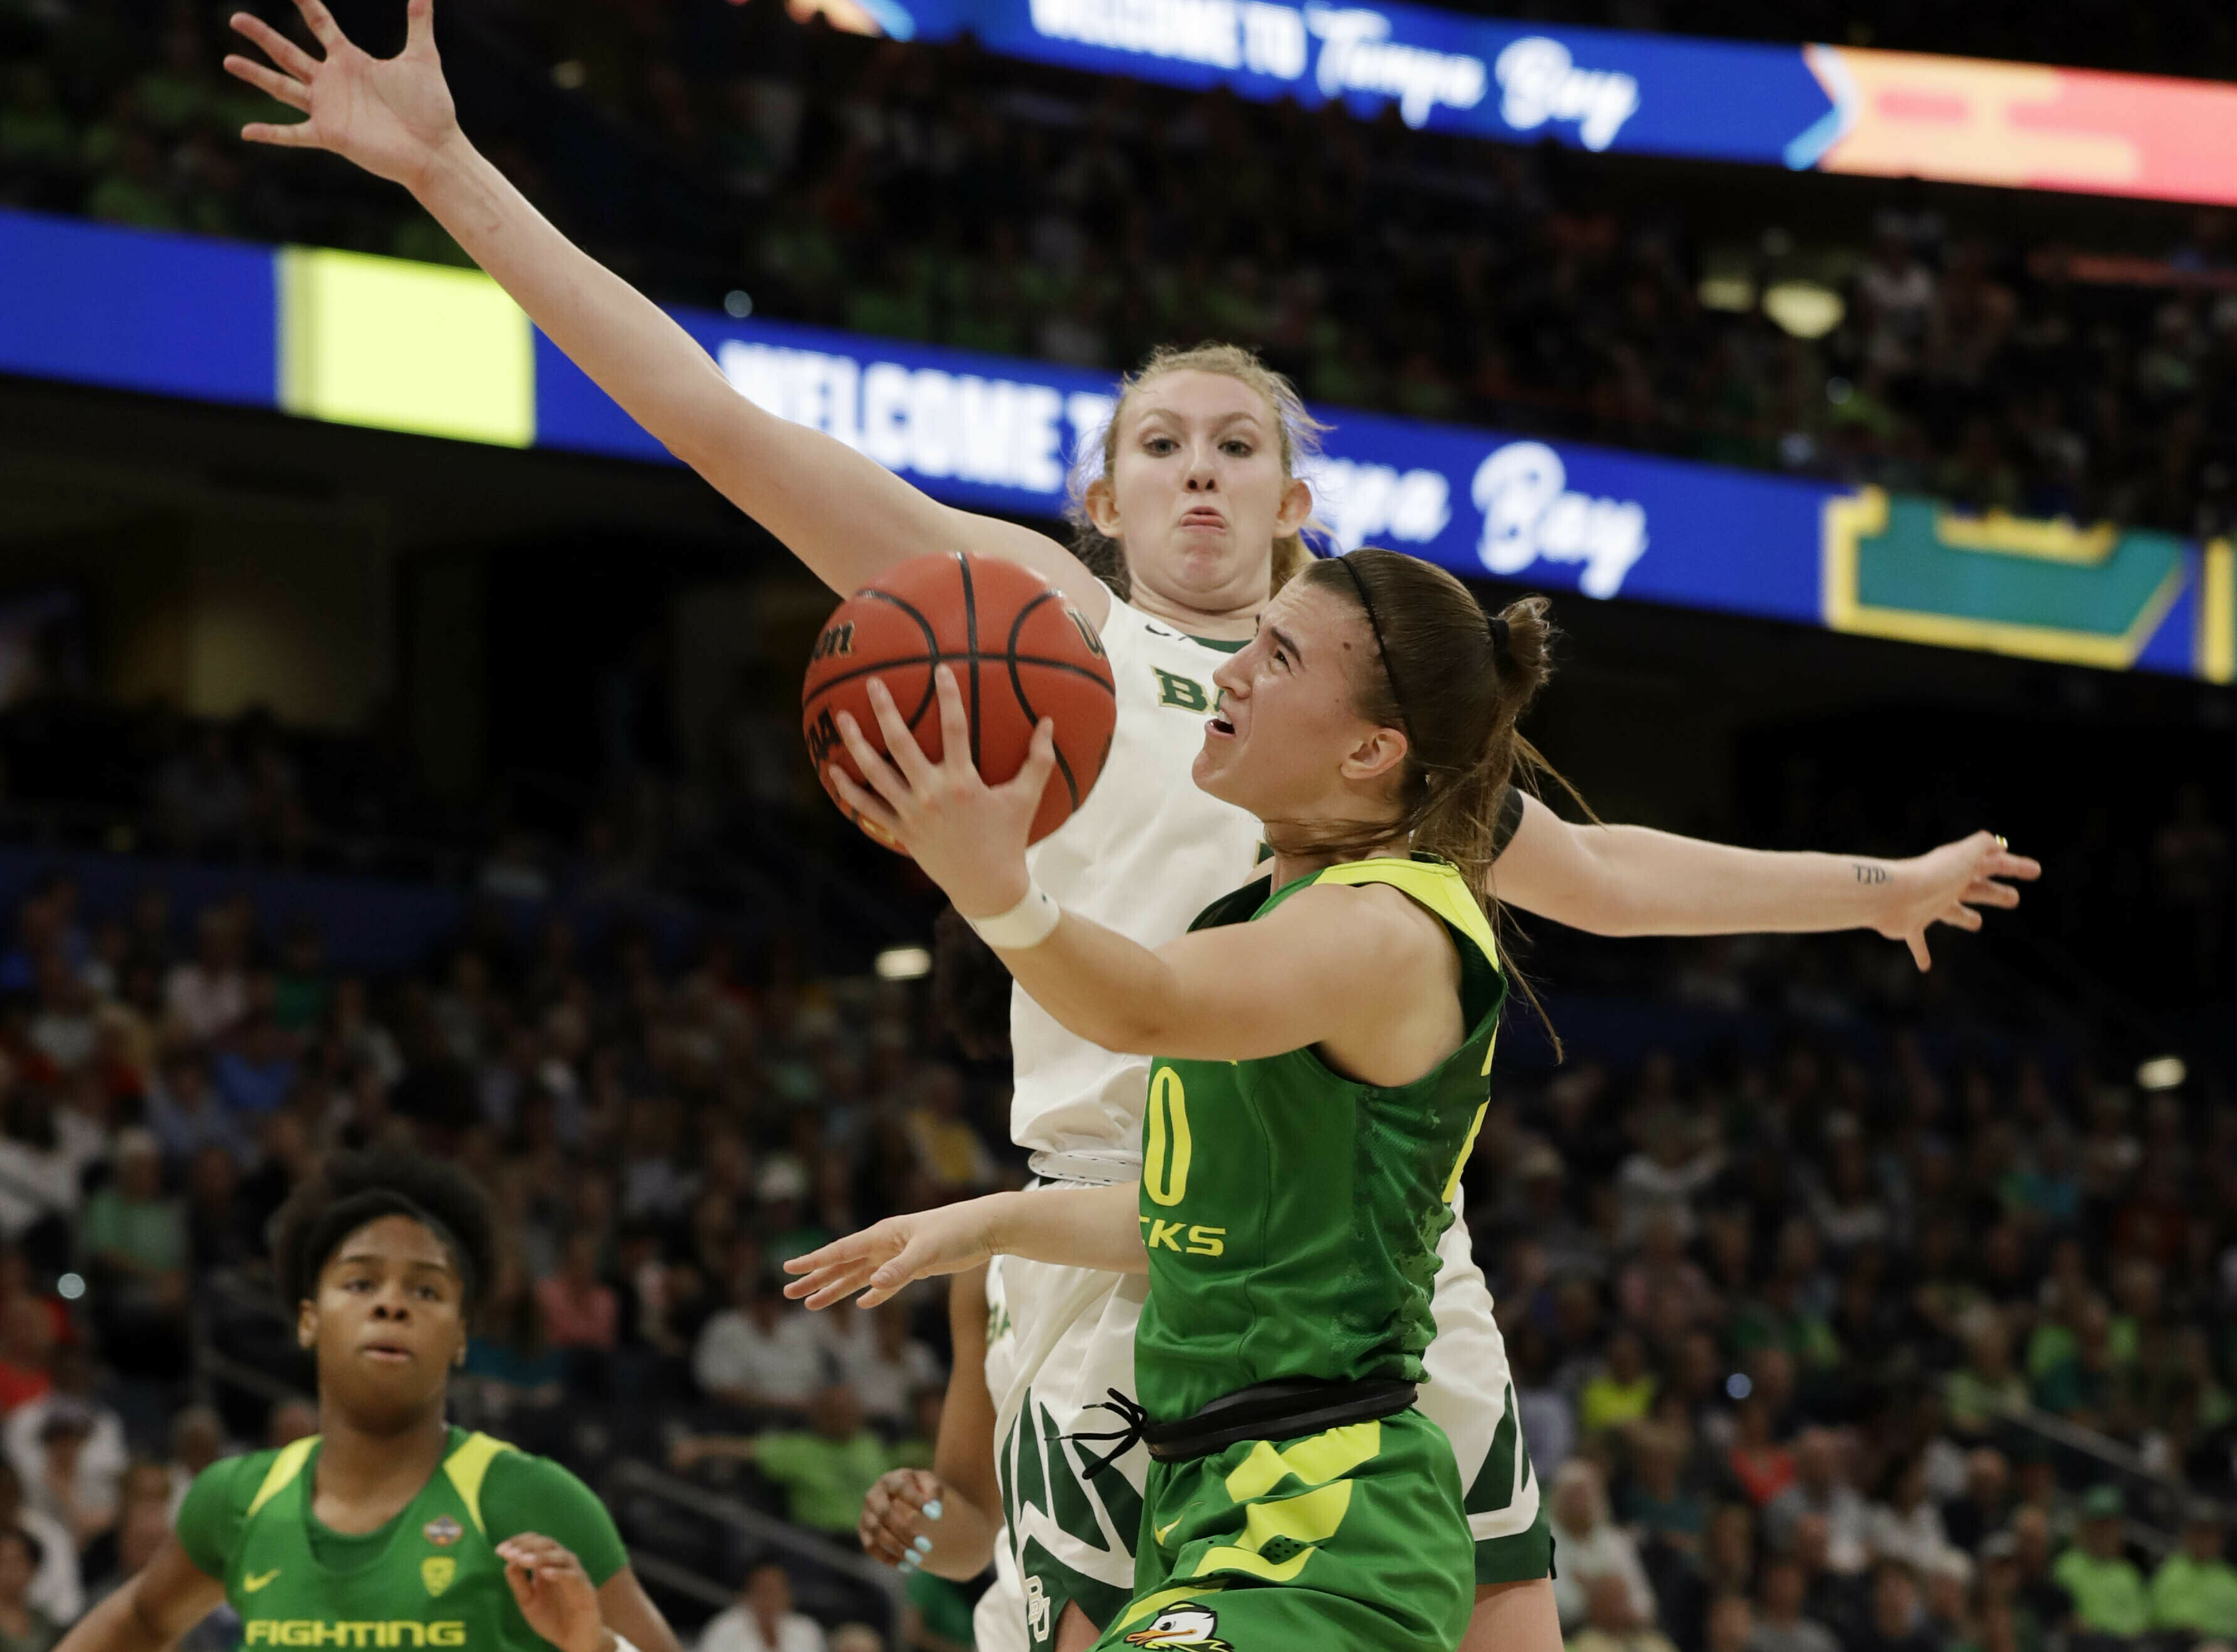 Oregon guard Sabrina Ionescu (20) drives to the basket as Baylor forward Lauren Cox (15), defends during a Final Four semifinal of the NCAA women's college basketball tournament Friday, April 5, 2019, in Tampa, Fla. (AP Photo/Chris O'Meara)